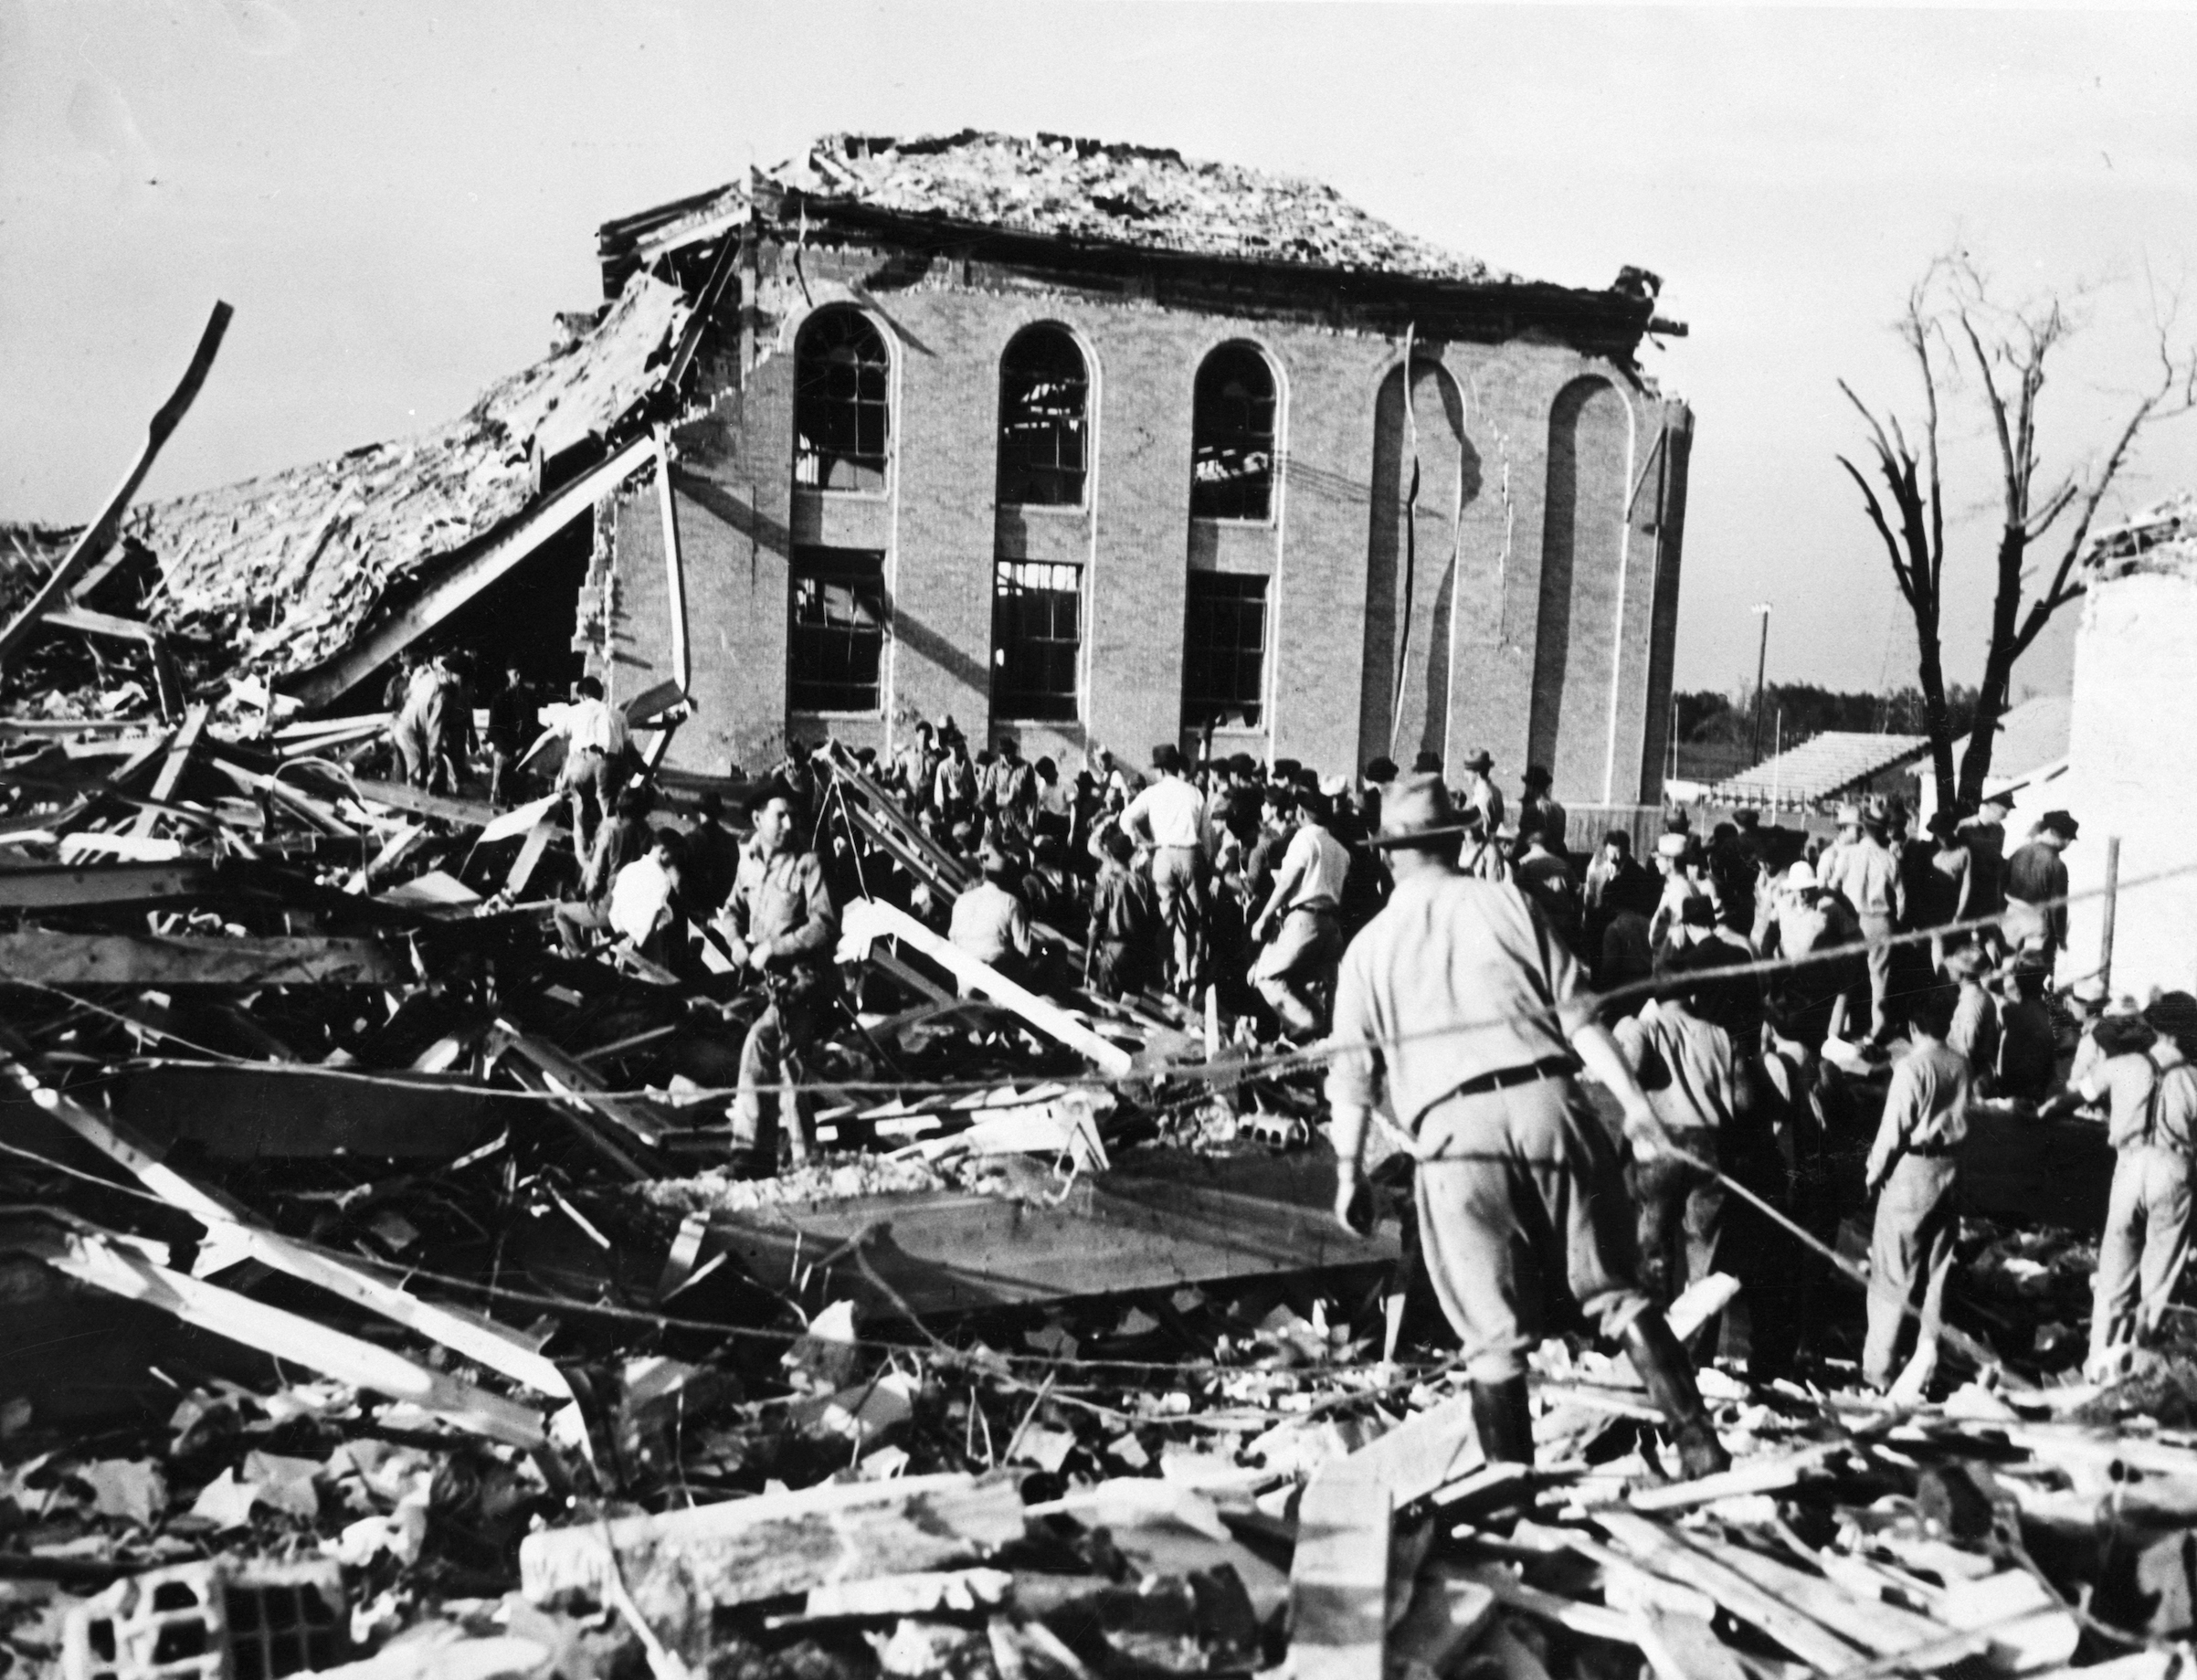 Frantic parents, rescue workers and oil field employees probe a tangled and twisted mass of wreckage after a terrific explosion had leveled all but this corner of the New London High School, near Overton, Tex, in March of 1937.